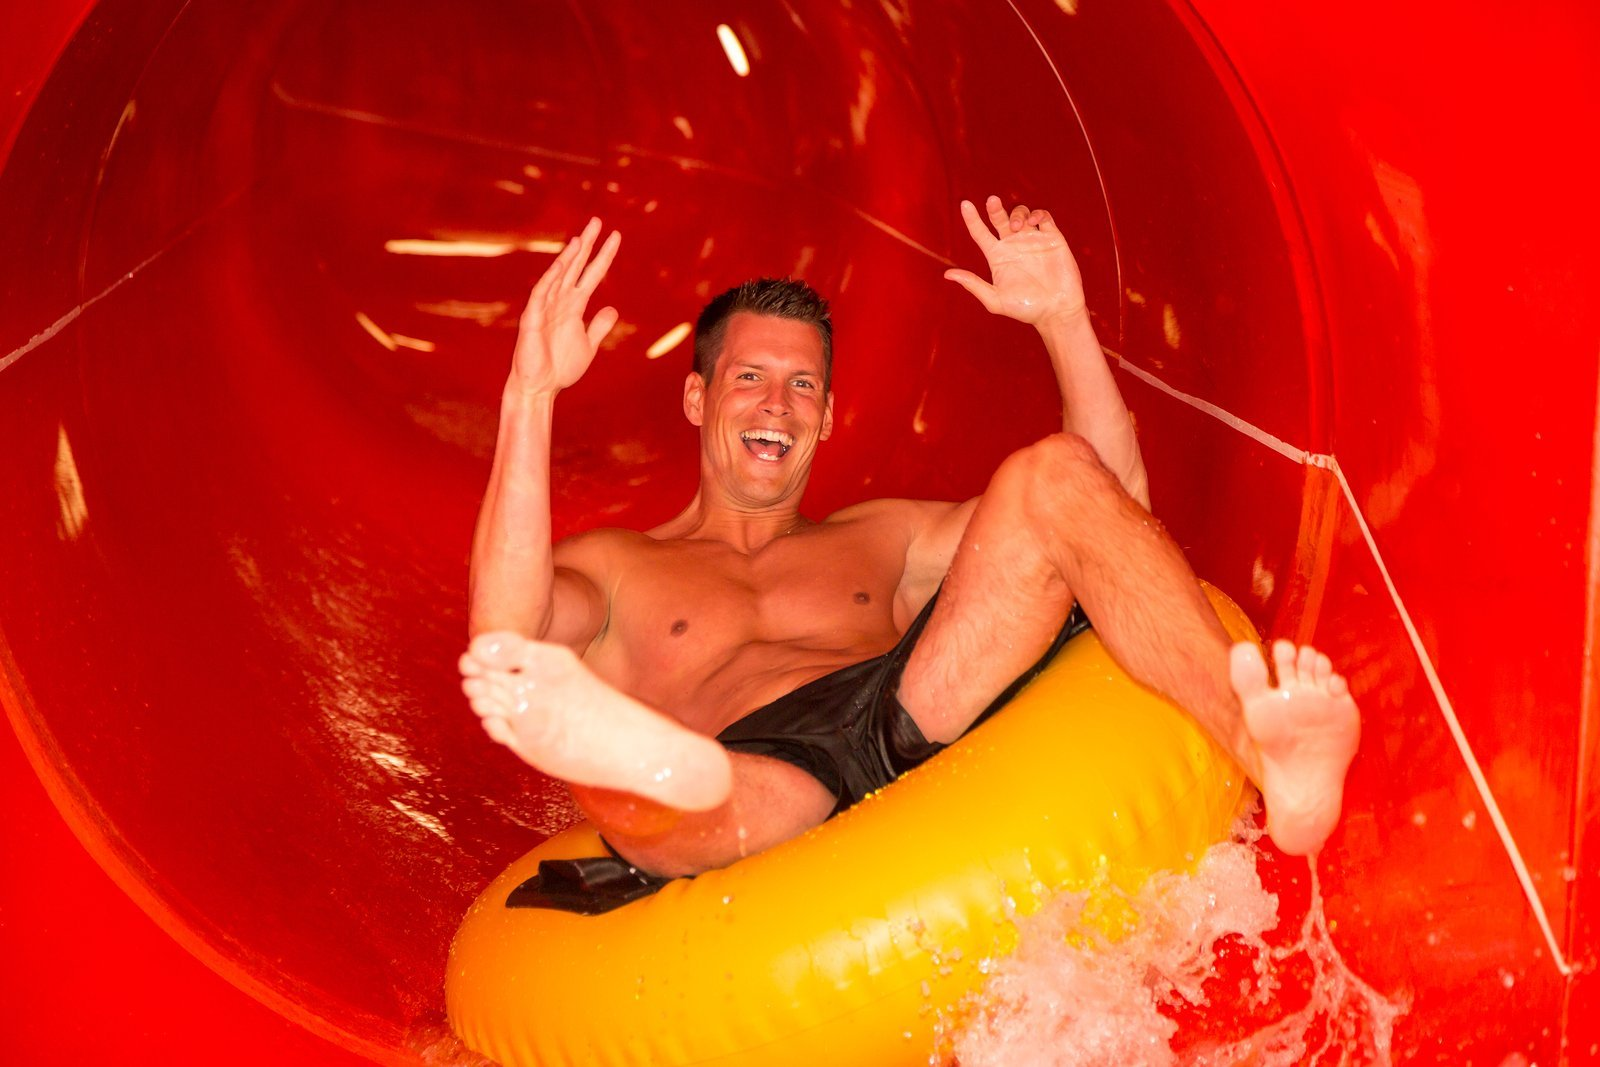 Hot Waterpark Attractions <br>Trends That Made a Splash in 2015